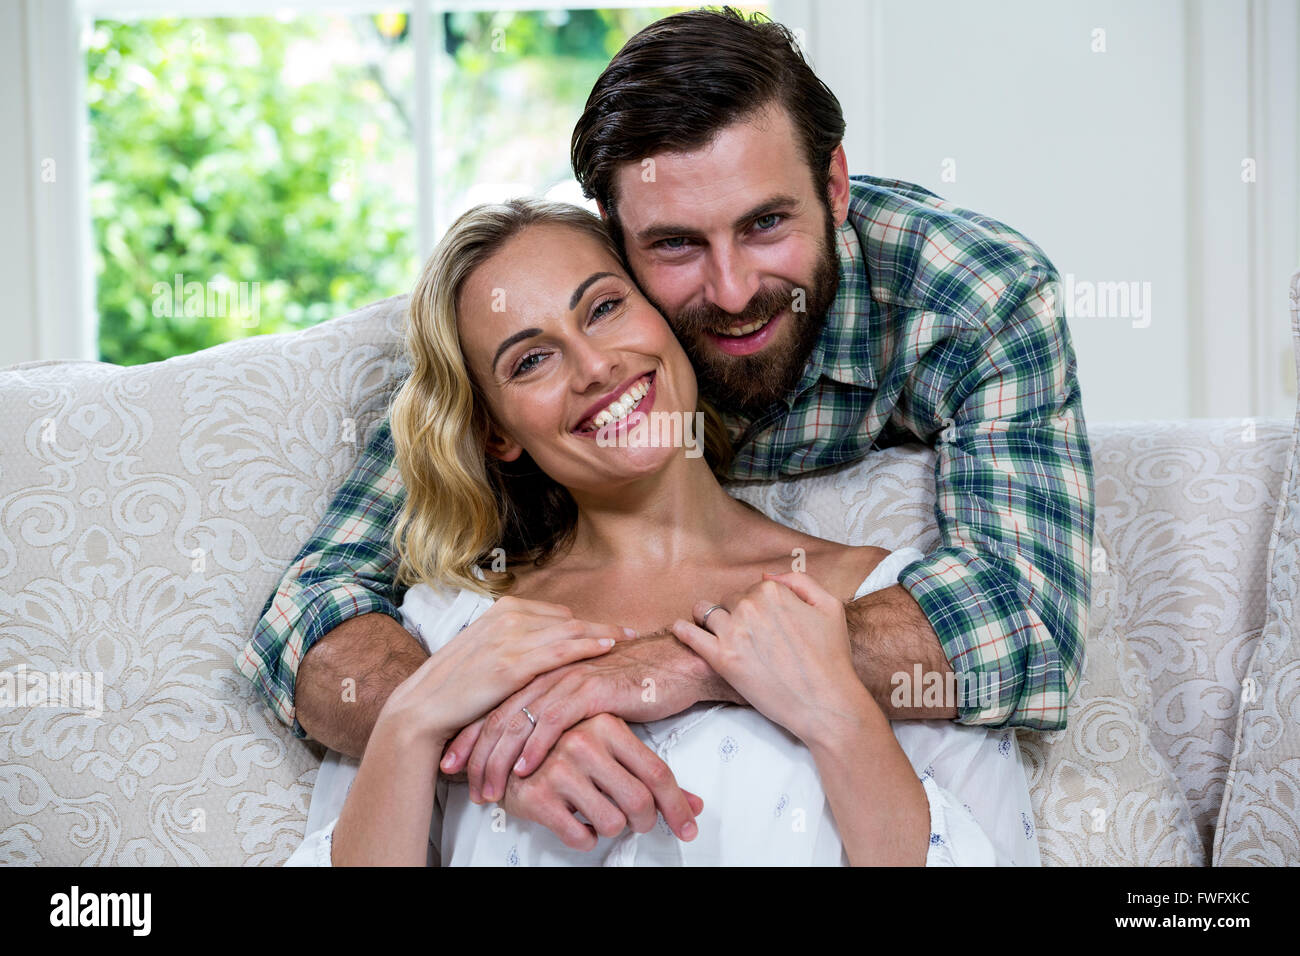 Husband embracing wife from behind against window Stock Photo